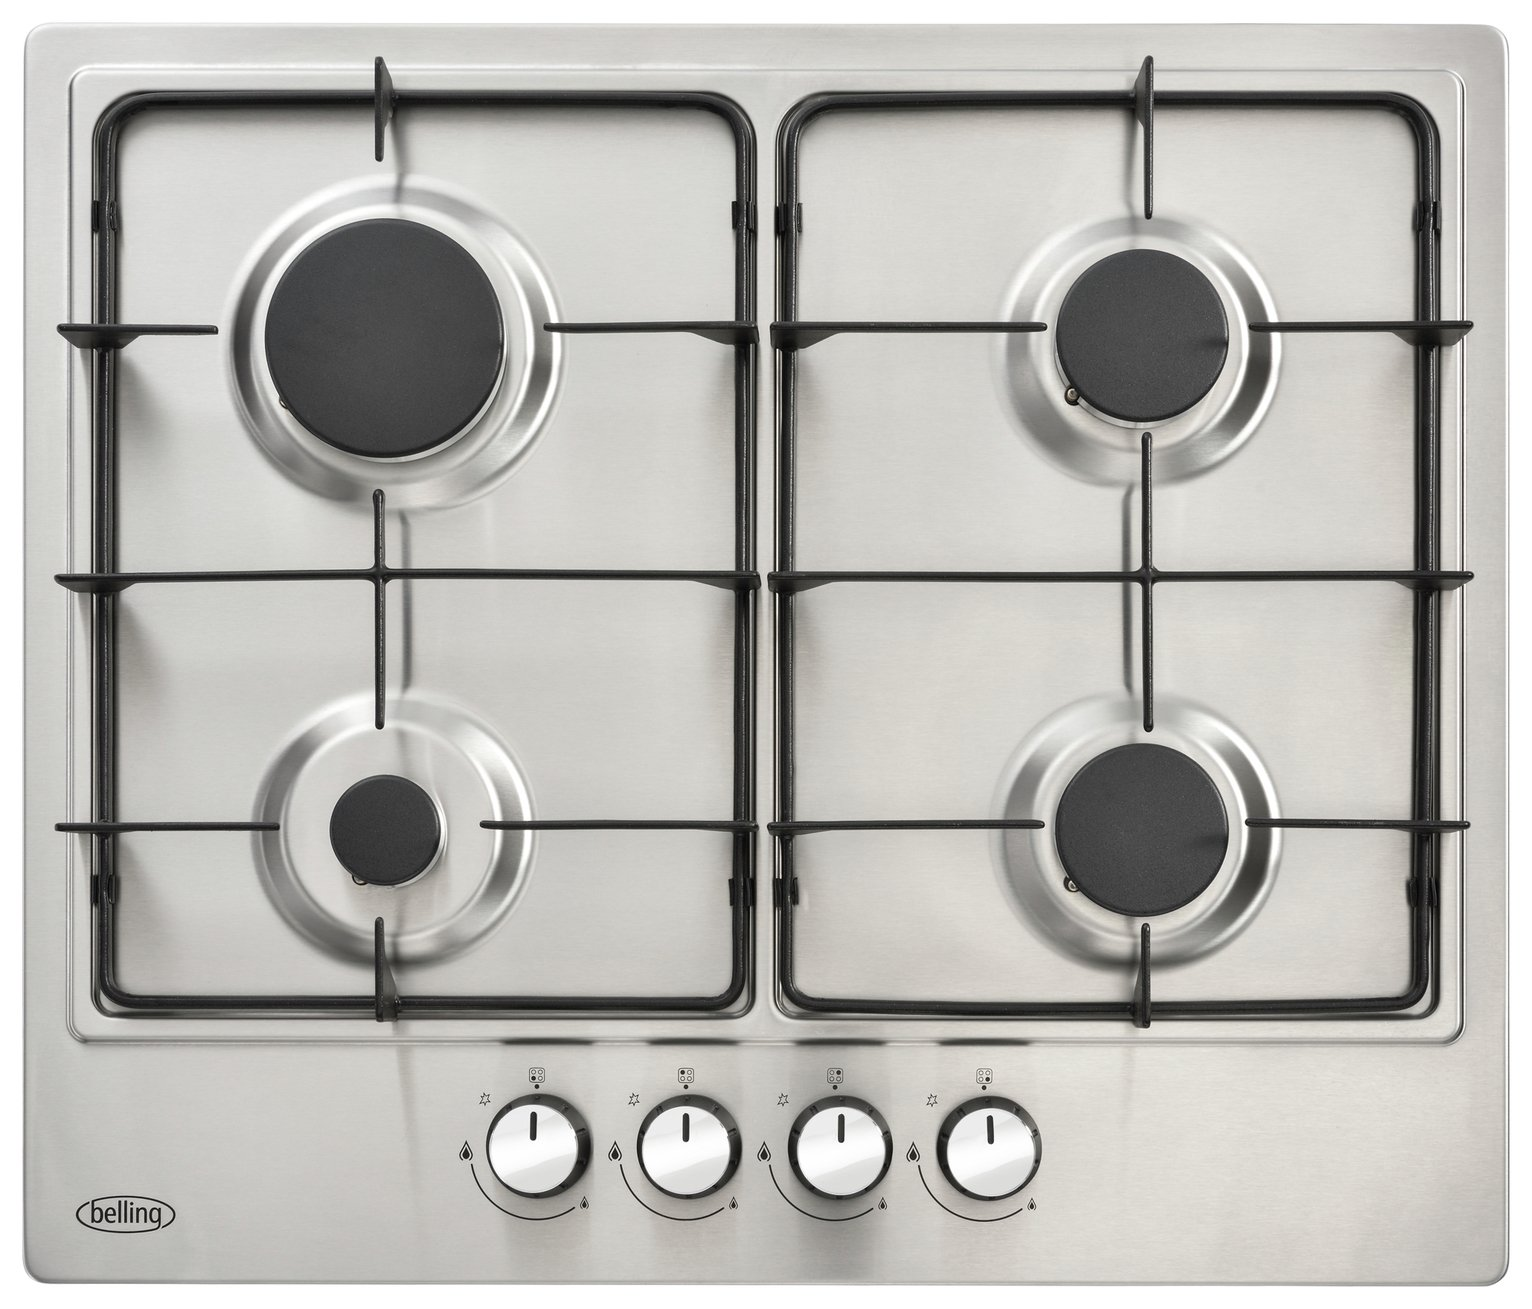 Belling GHU602GC Gas Hob - Stainless Steel